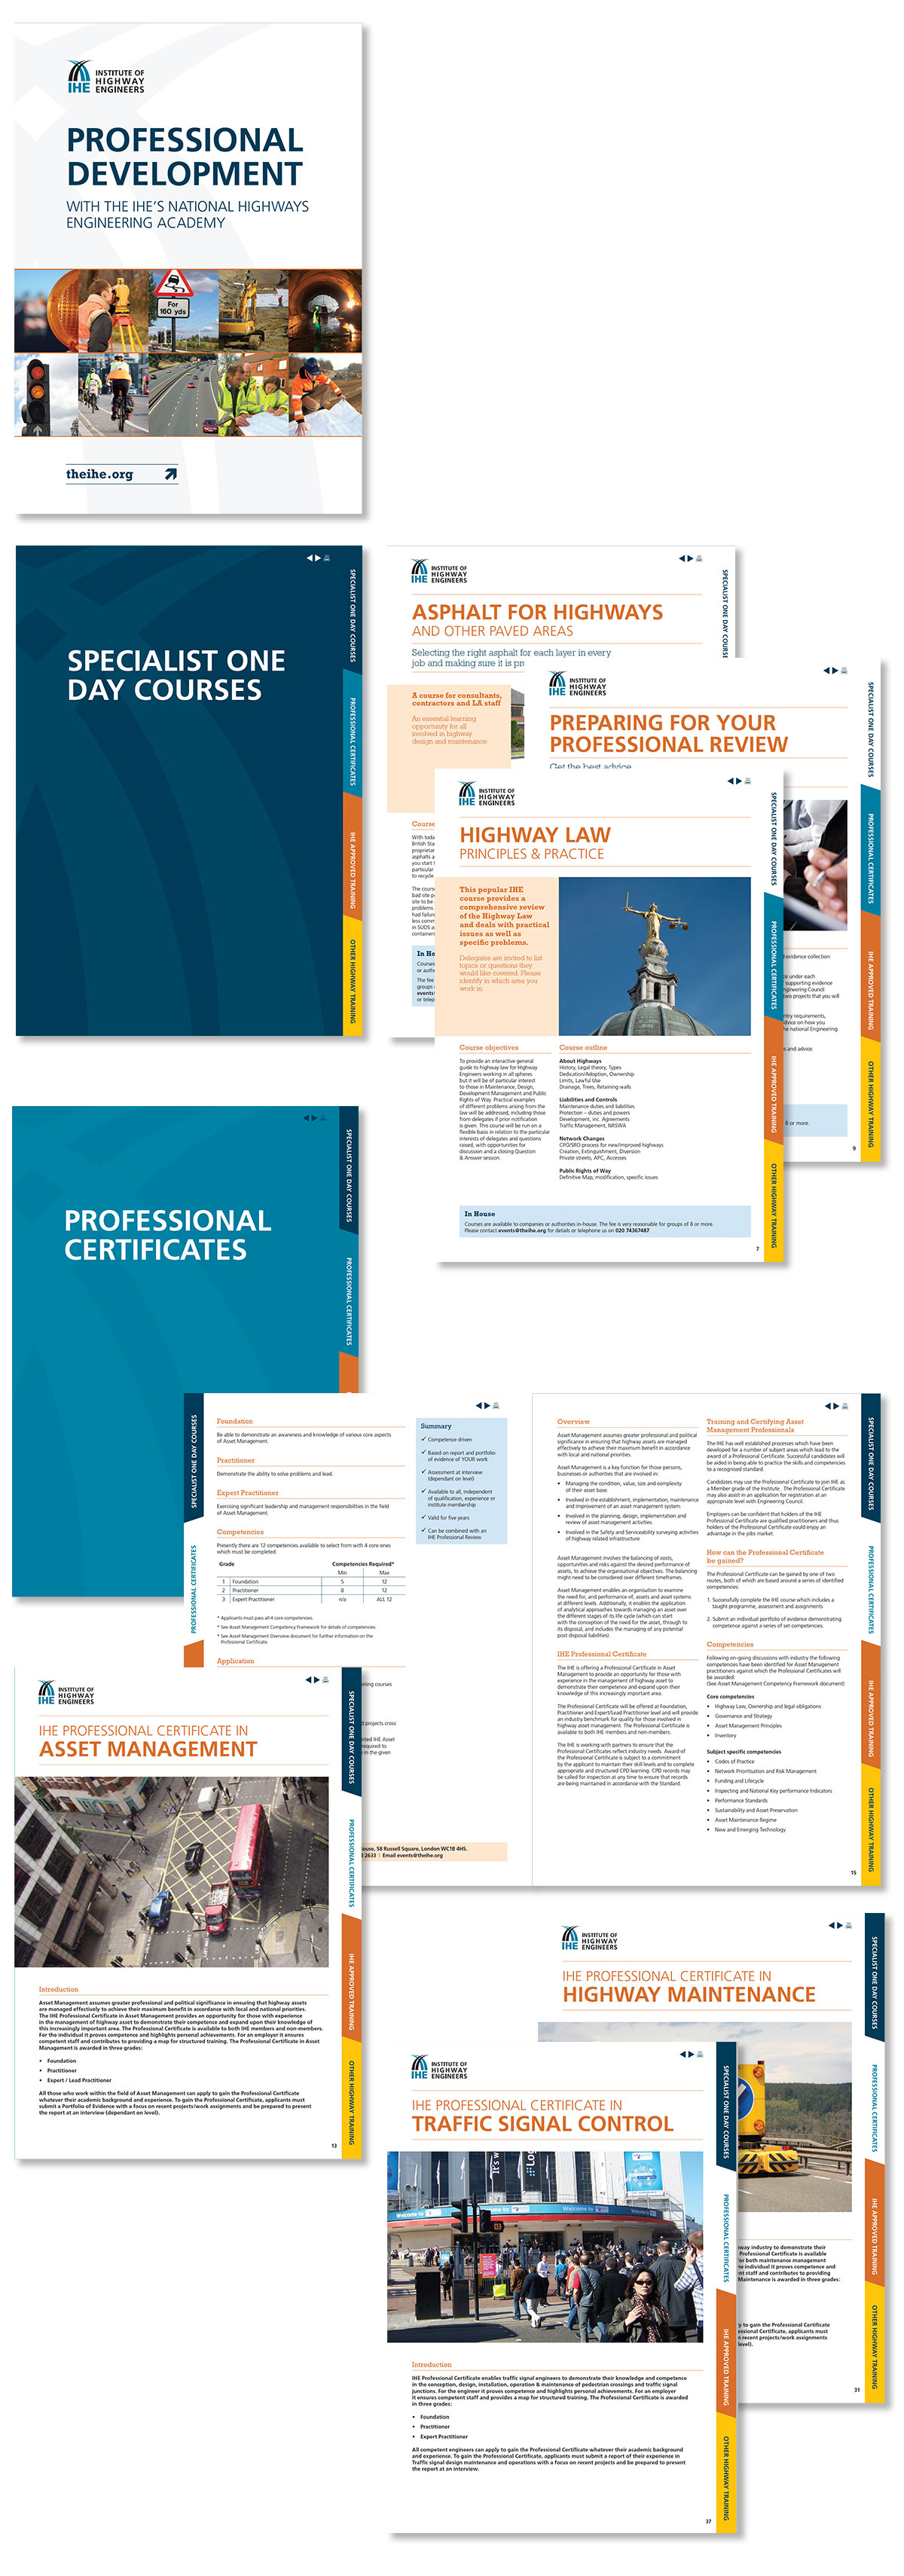 IHE-training-brochure